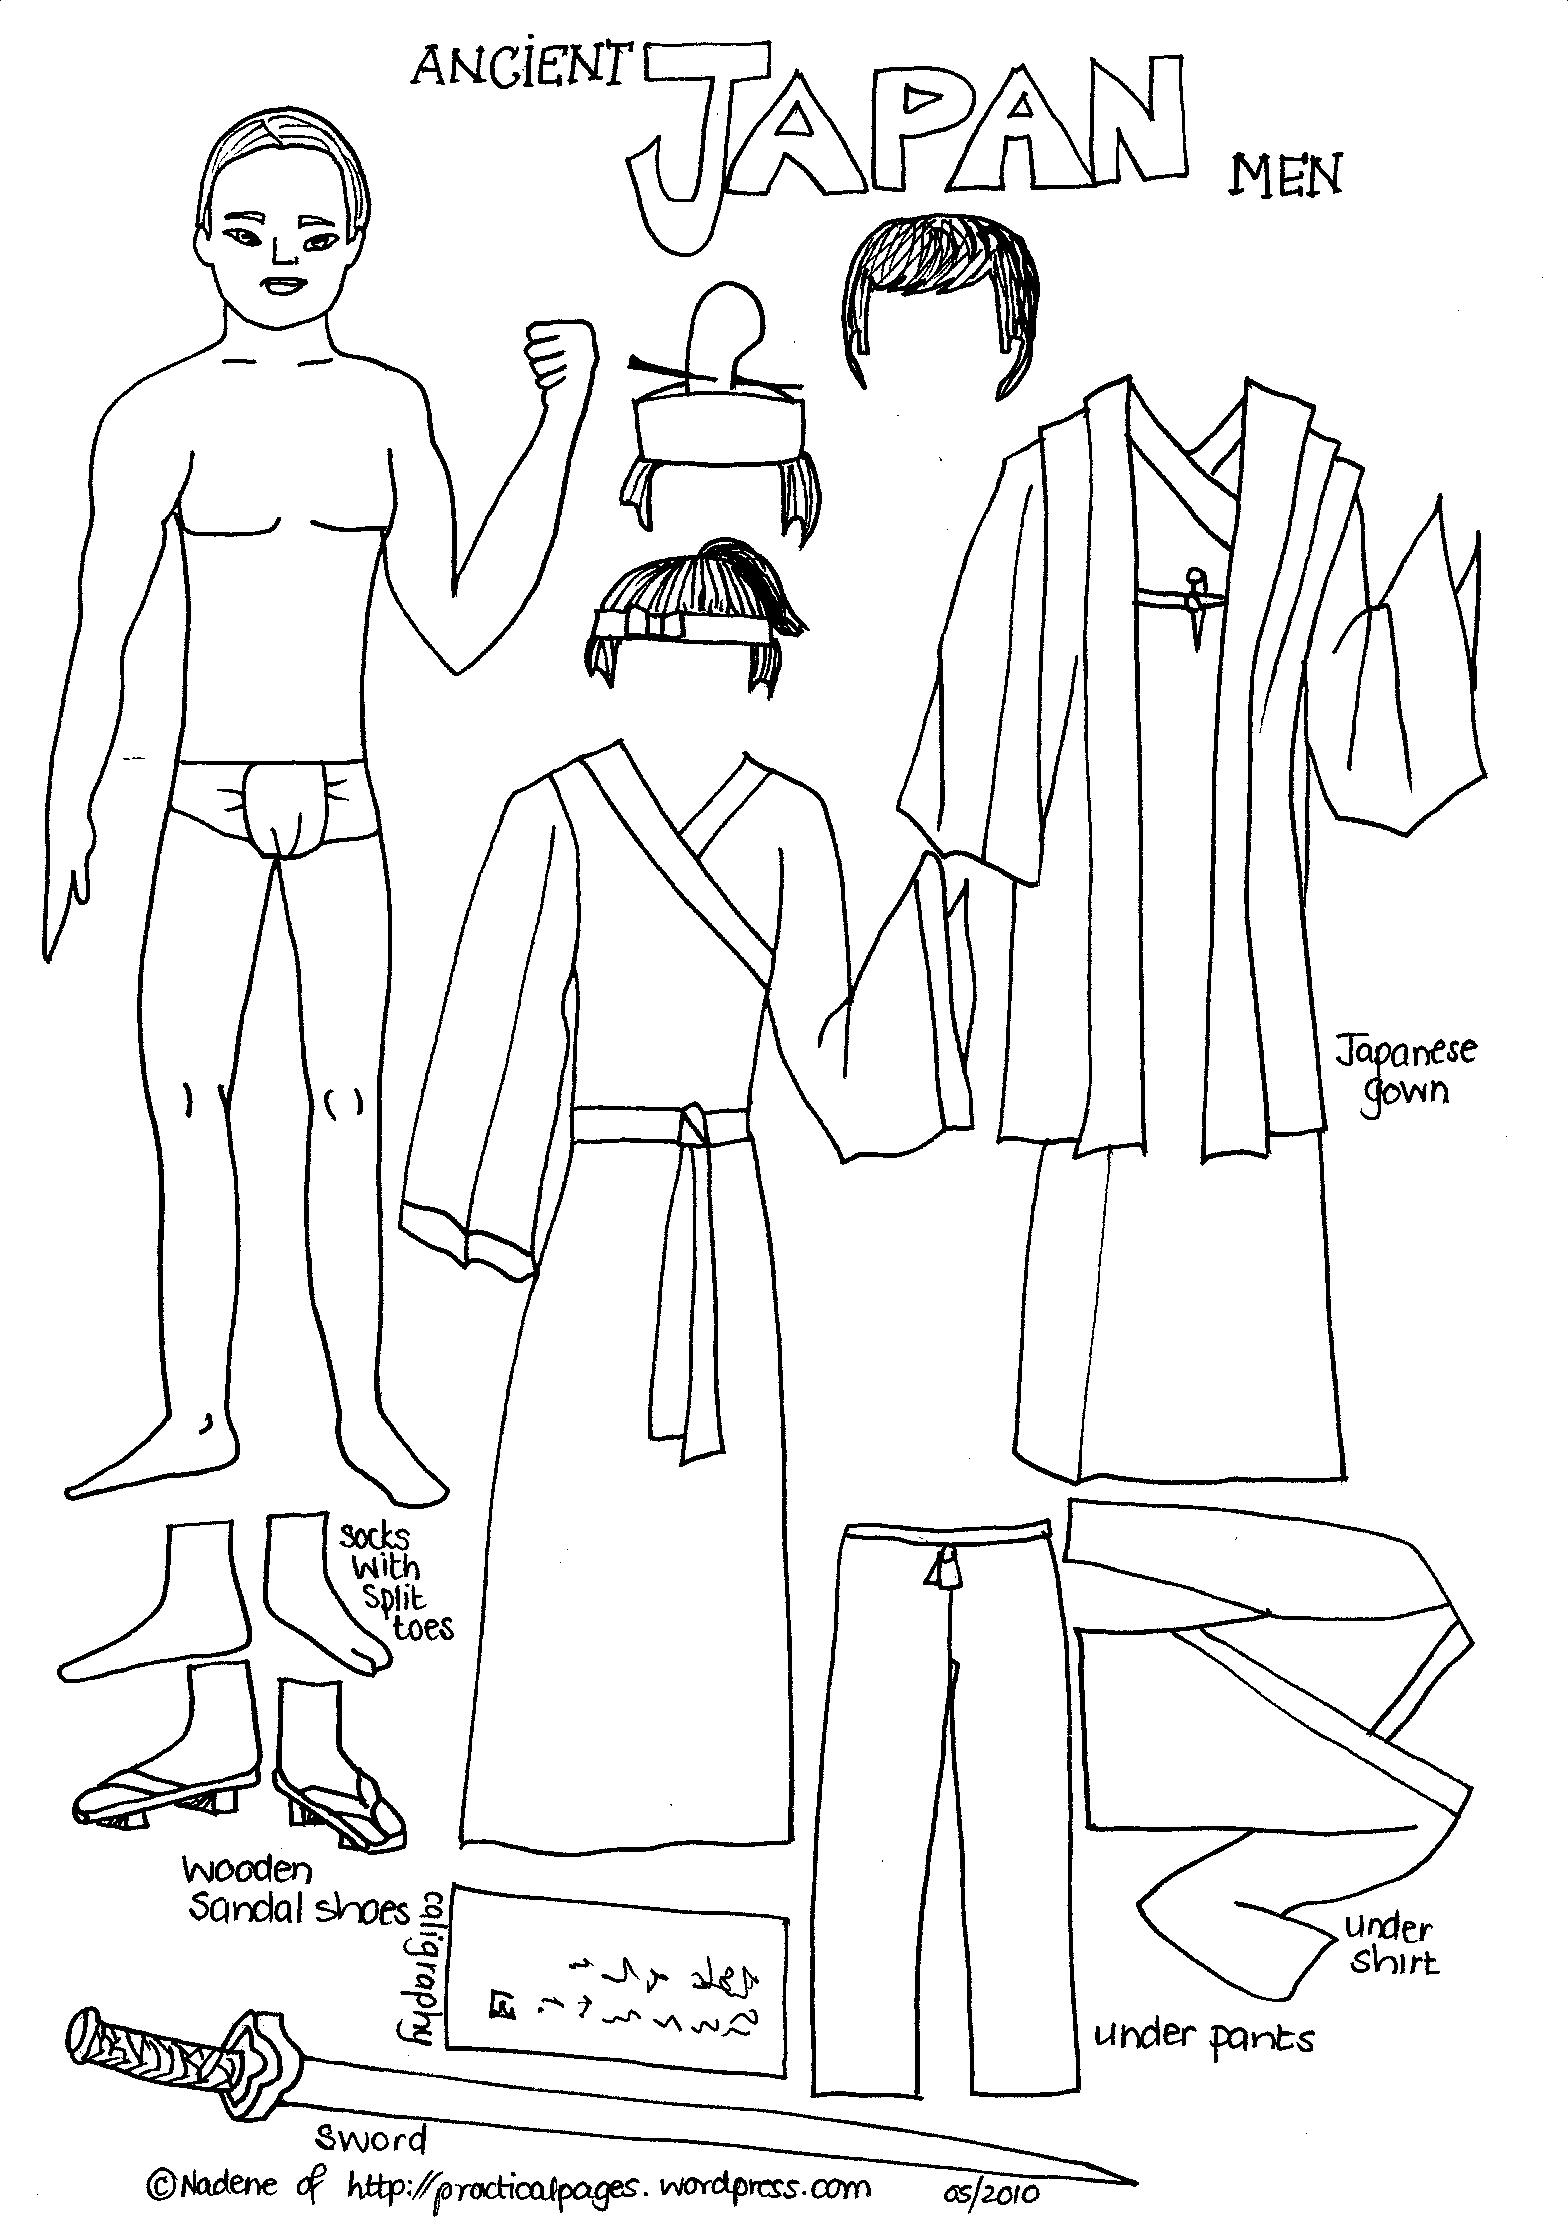 Ancient History Japan Men Paper Dolls Ancient Japan Men S Art Men Paperdolls Dolls Practical